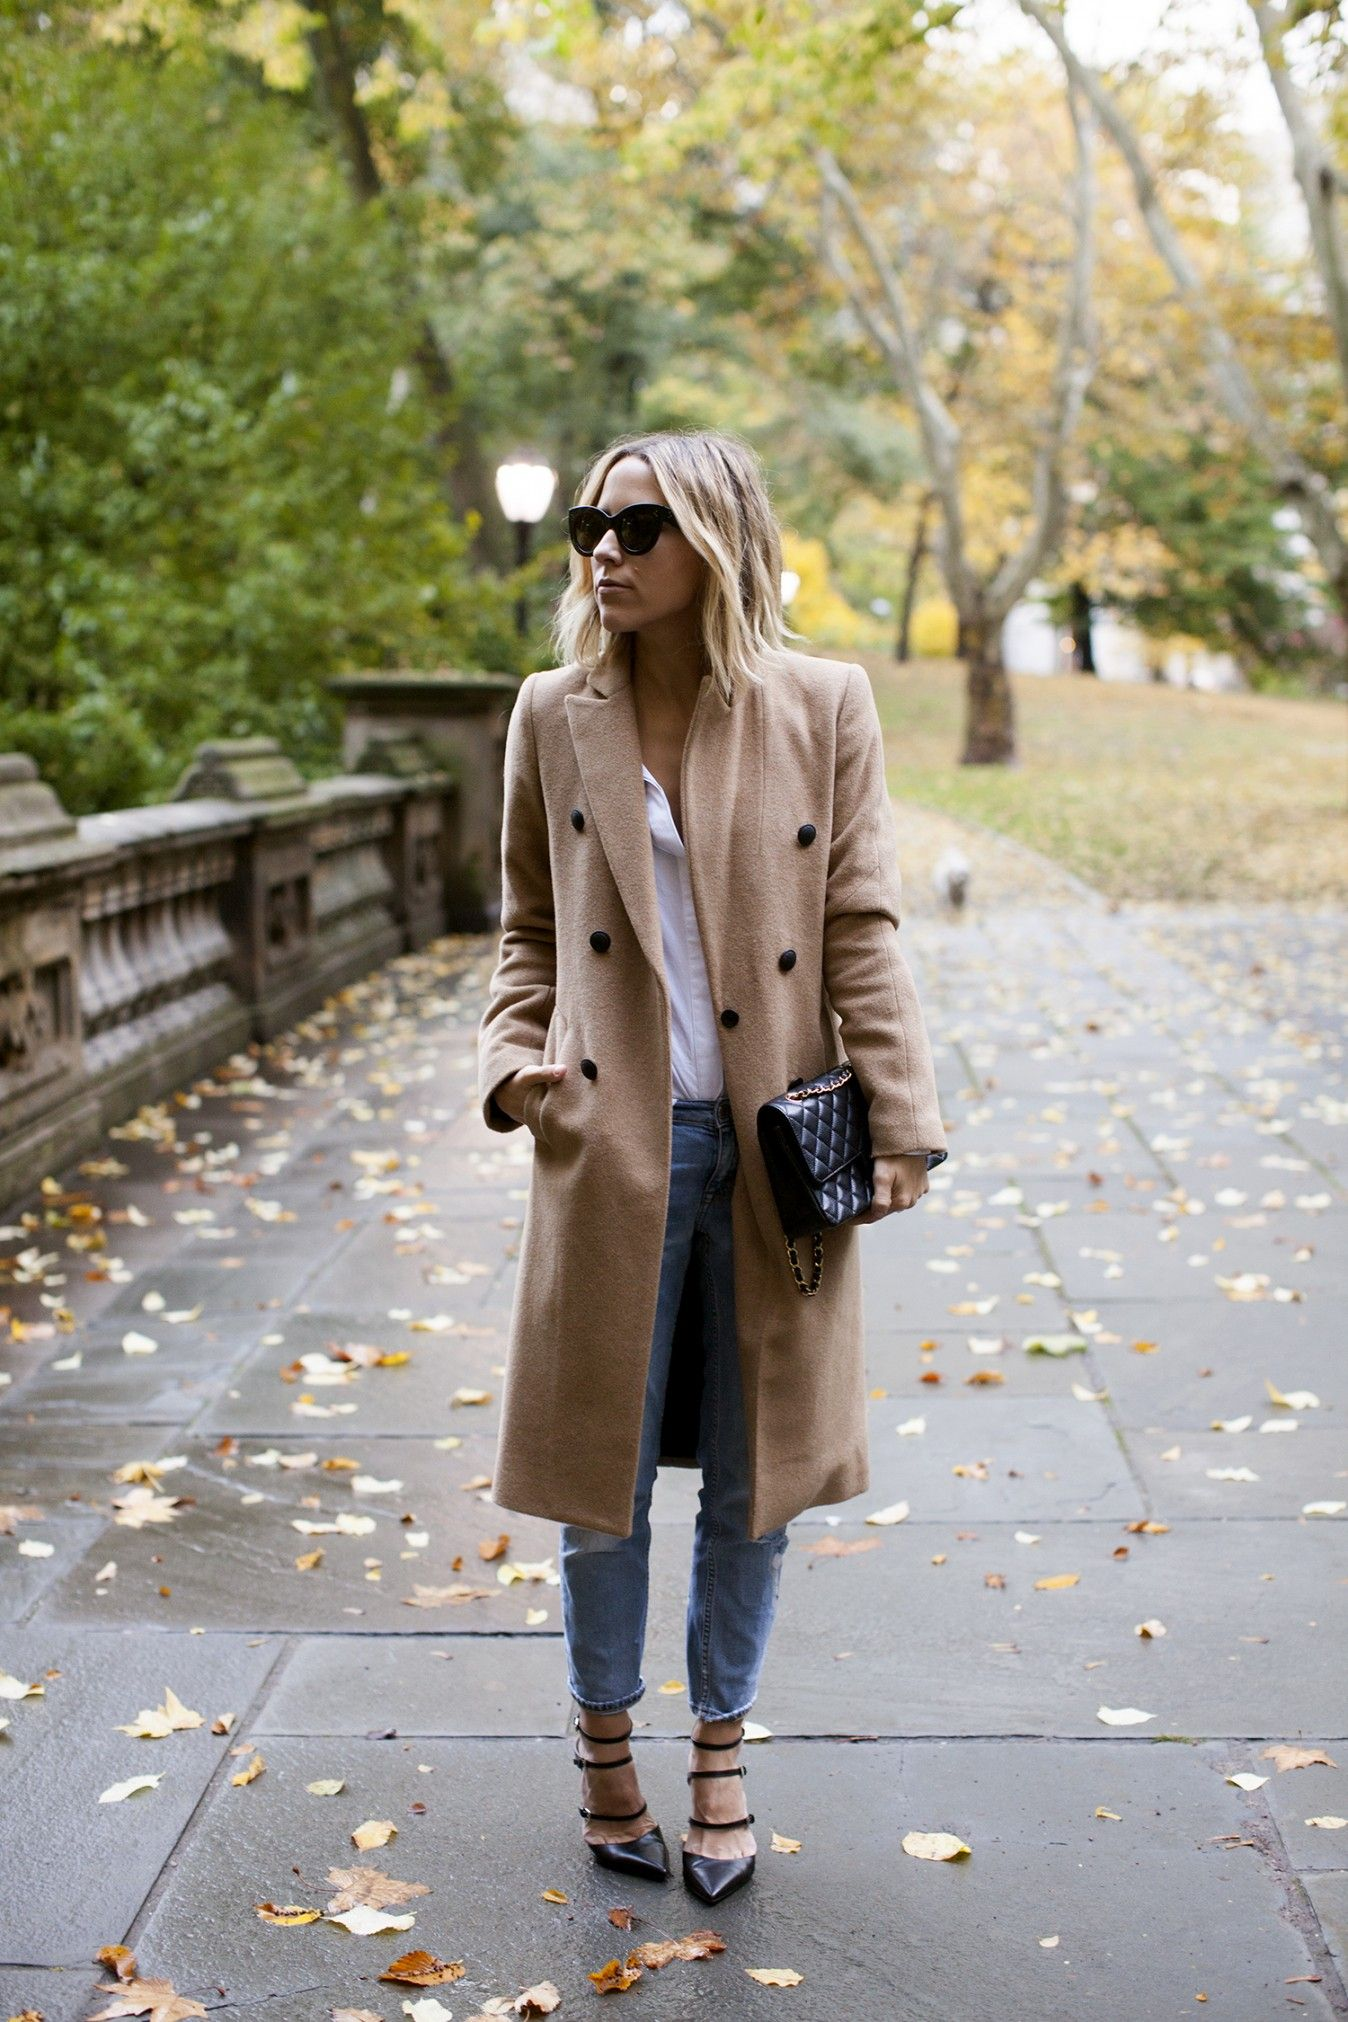 52db1b2f4a1 Camel coats are the must have this fall  Jacey Duprie wears hers with a  white blouse